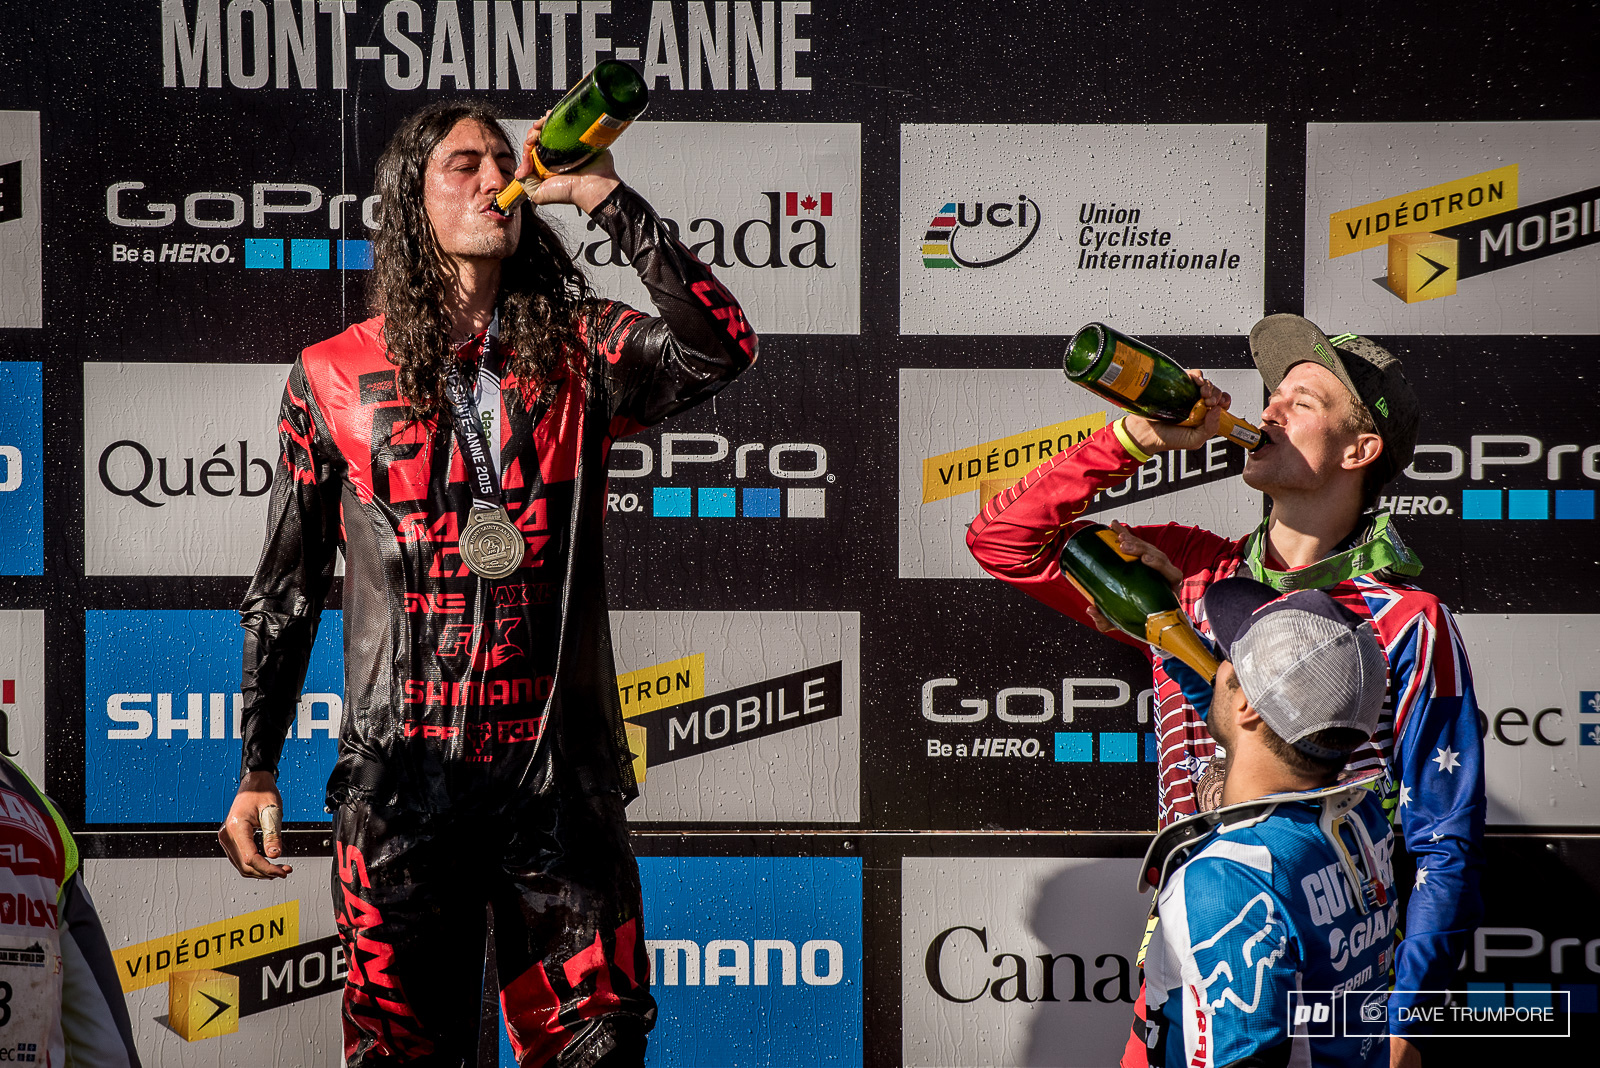 A quick podium shower to rinse off the mud and sweat and Ratboy was ready for the party.